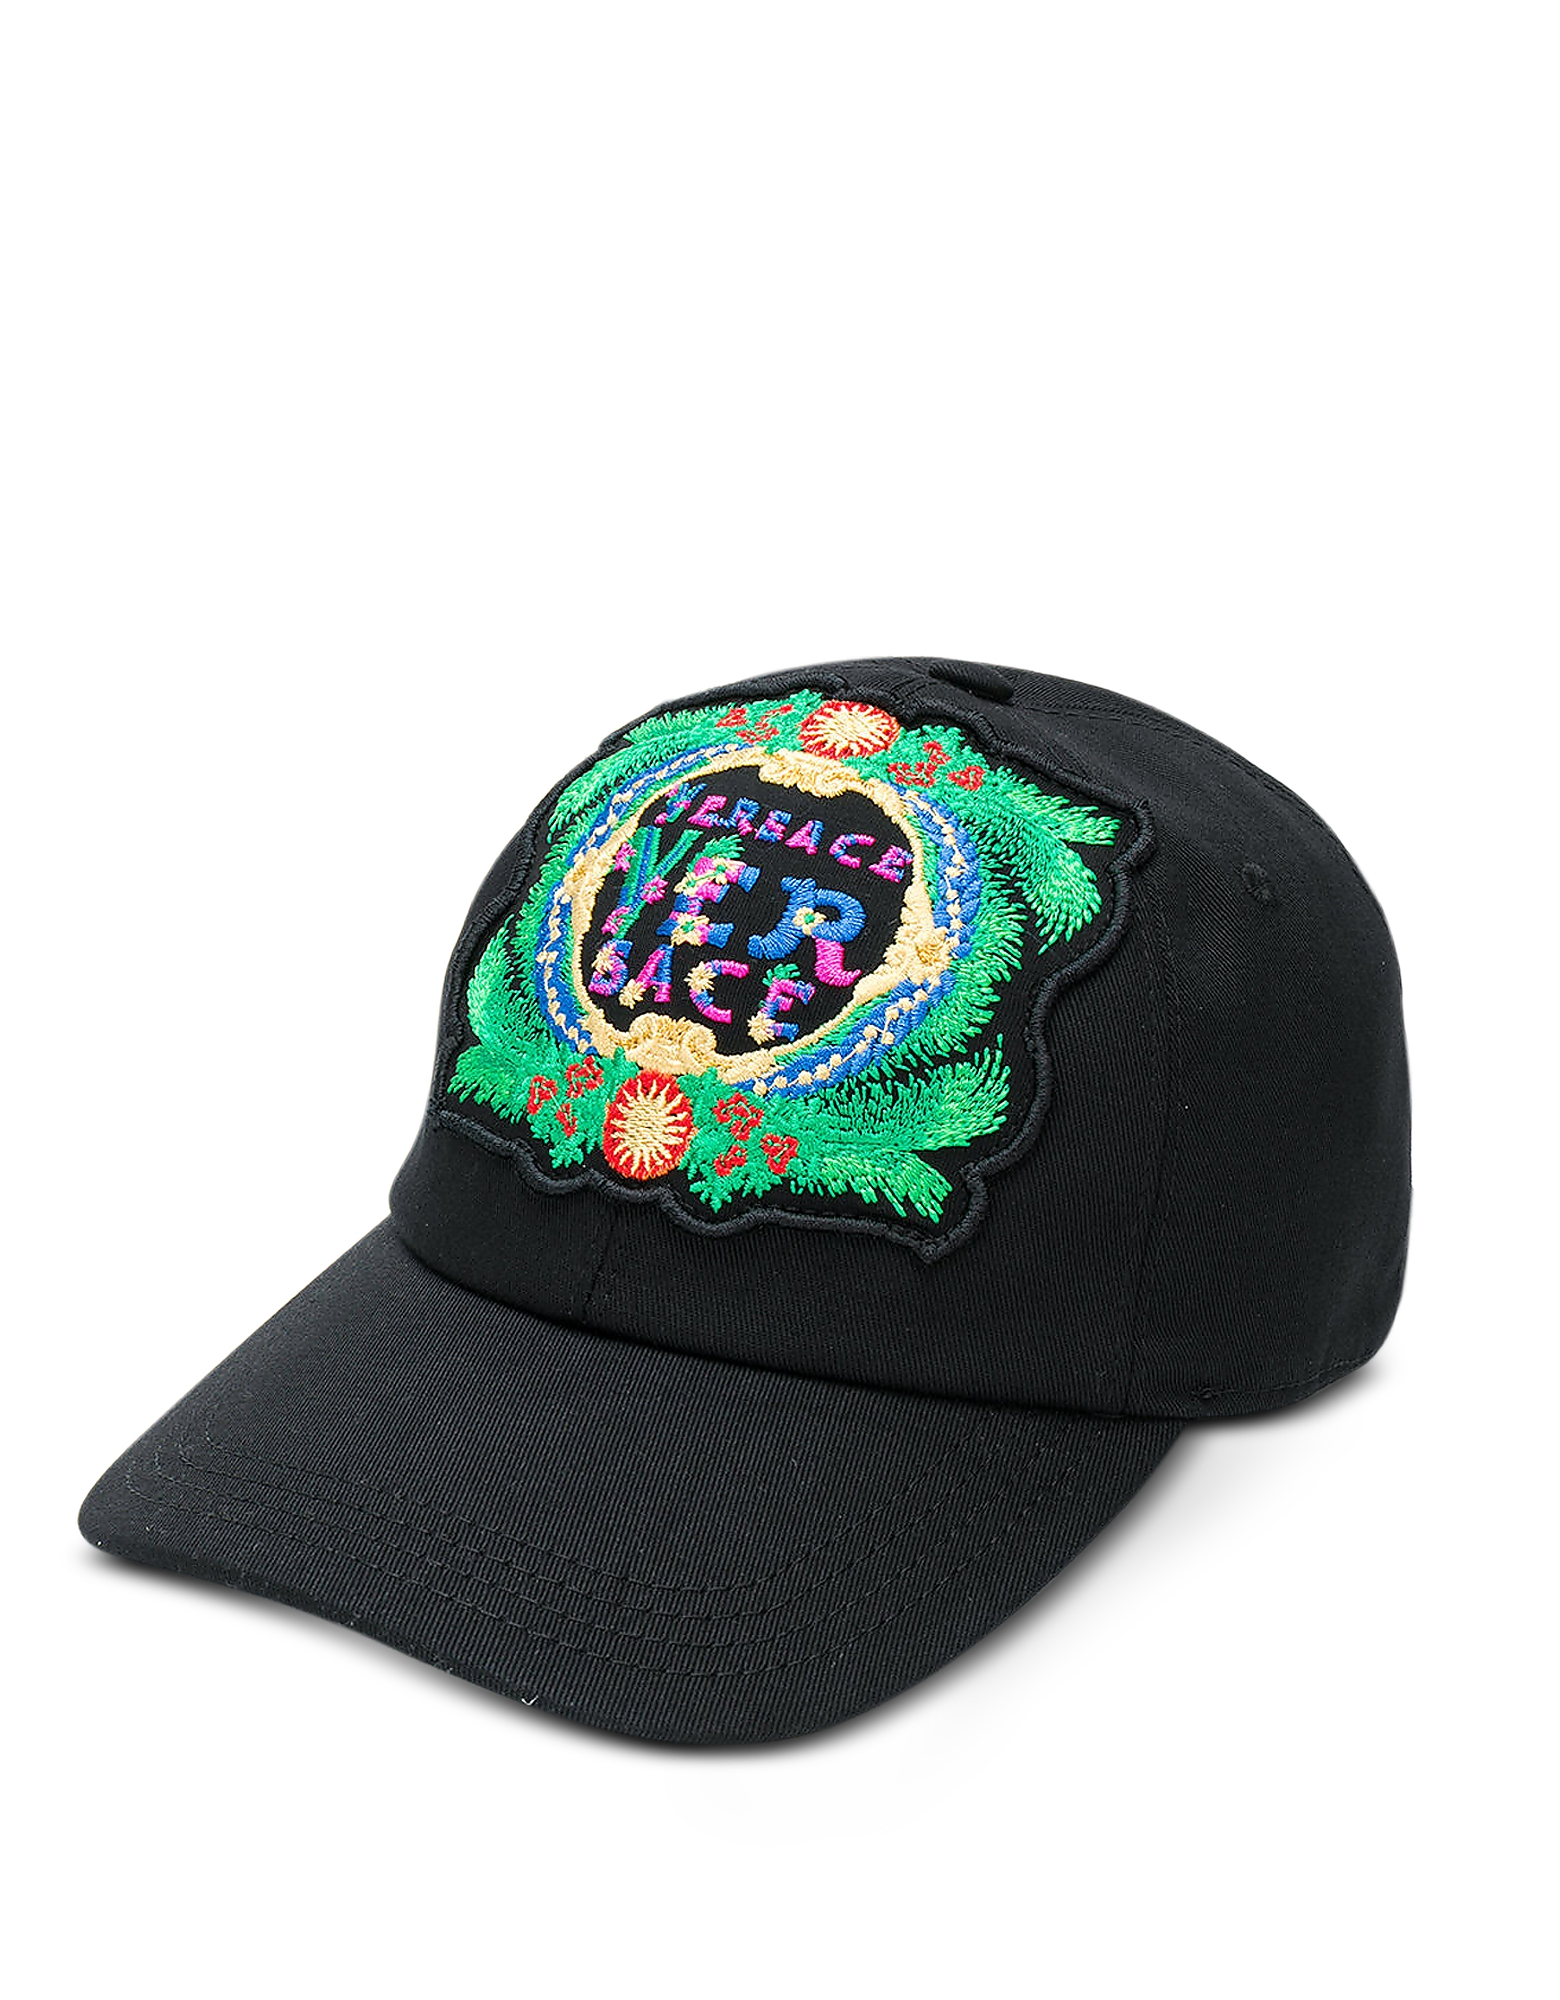 Black Cotton Unisex Baseball Cap w/Beverly Palm Embroidery